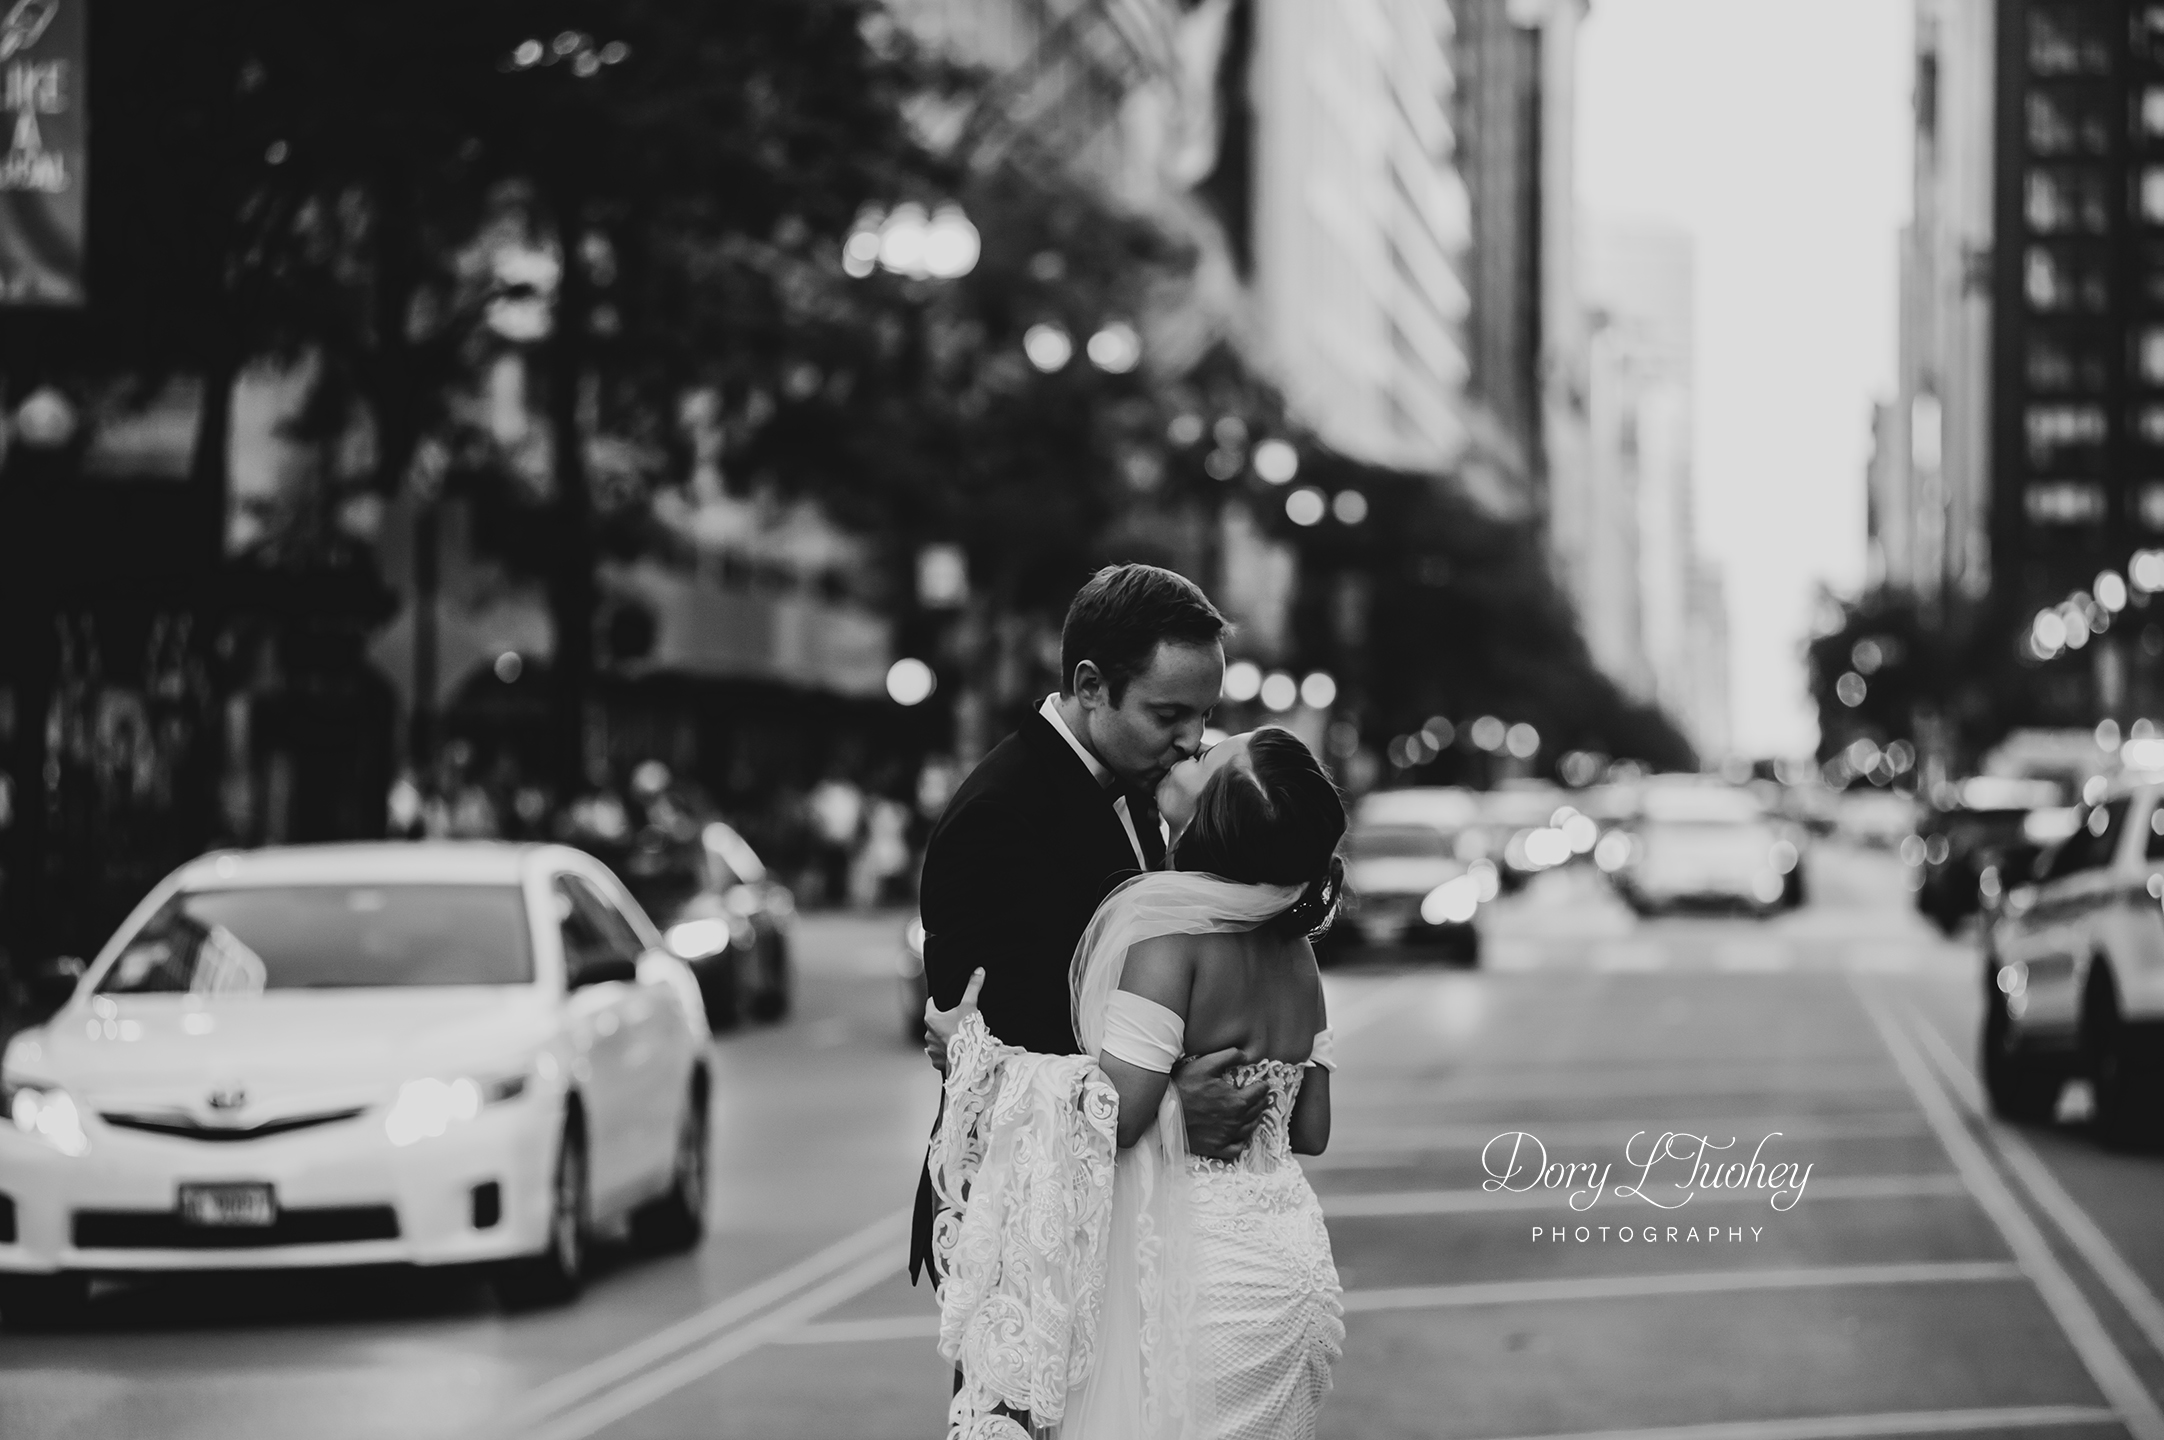 Wedding_chicago_bride_groom_photographer_wisconsin_gren_bay_wit_loyola_19.jpg